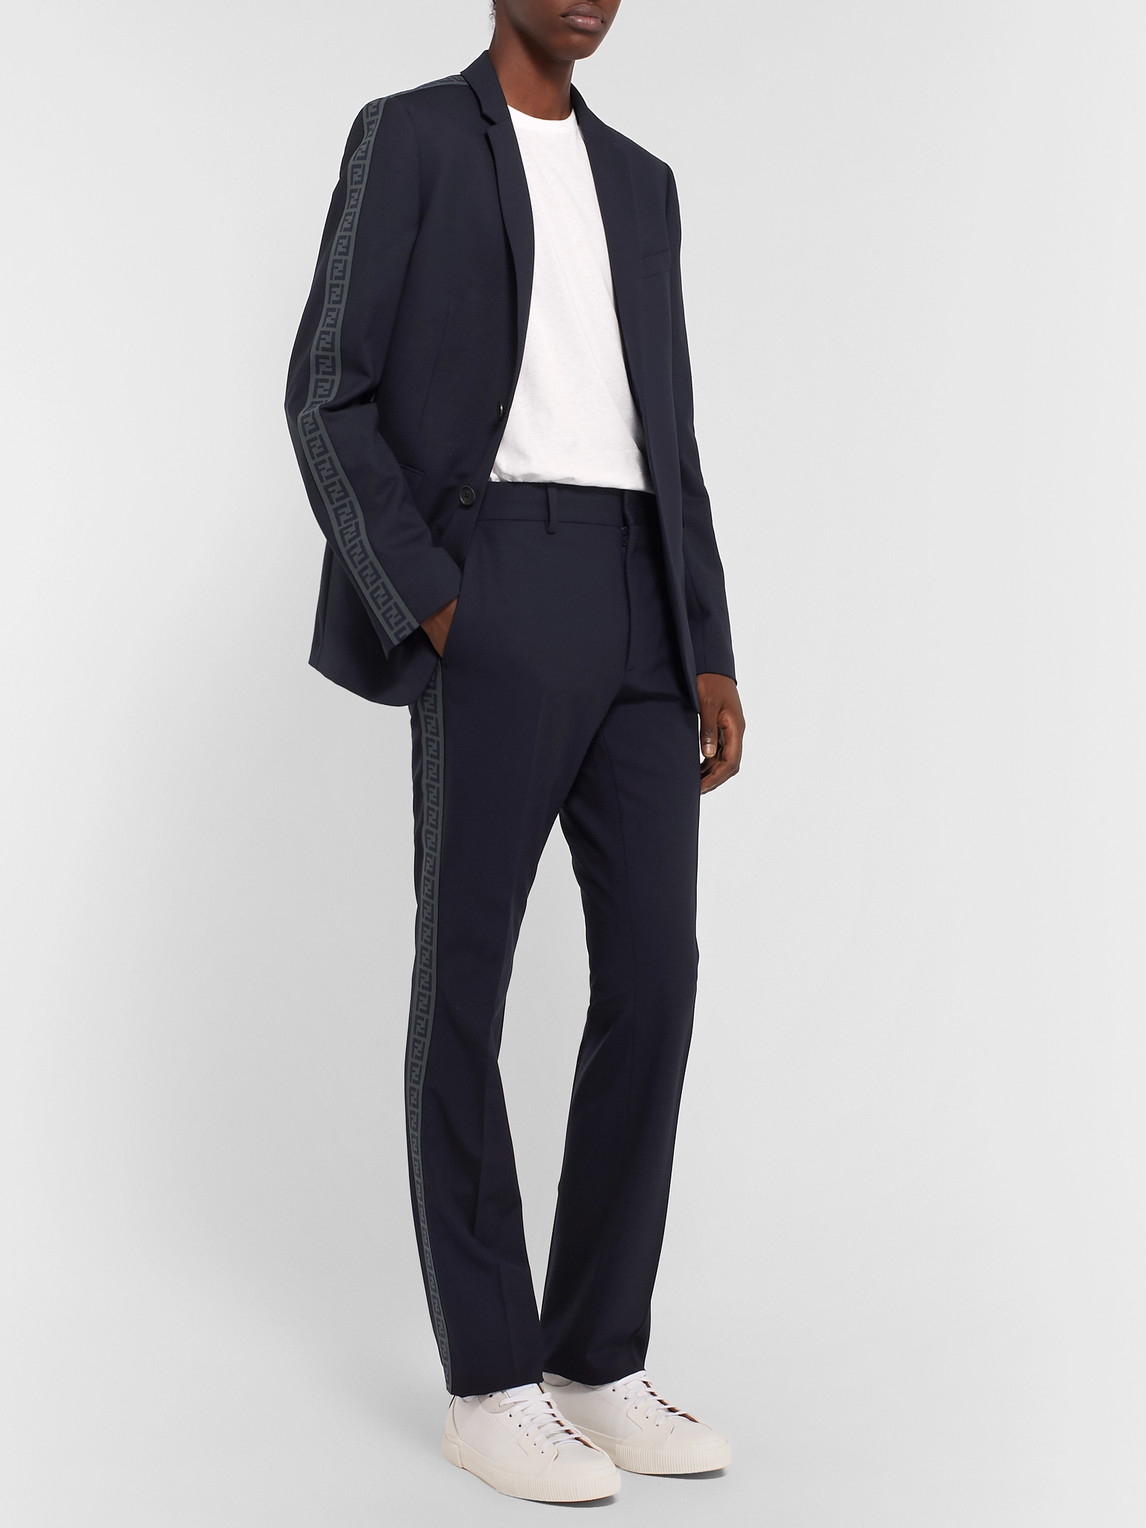 Fendi Suits NAVY LOGO JACQUARD-TRIMMED STRETCH-VIRGIN WOOL SUIT TROUSERS